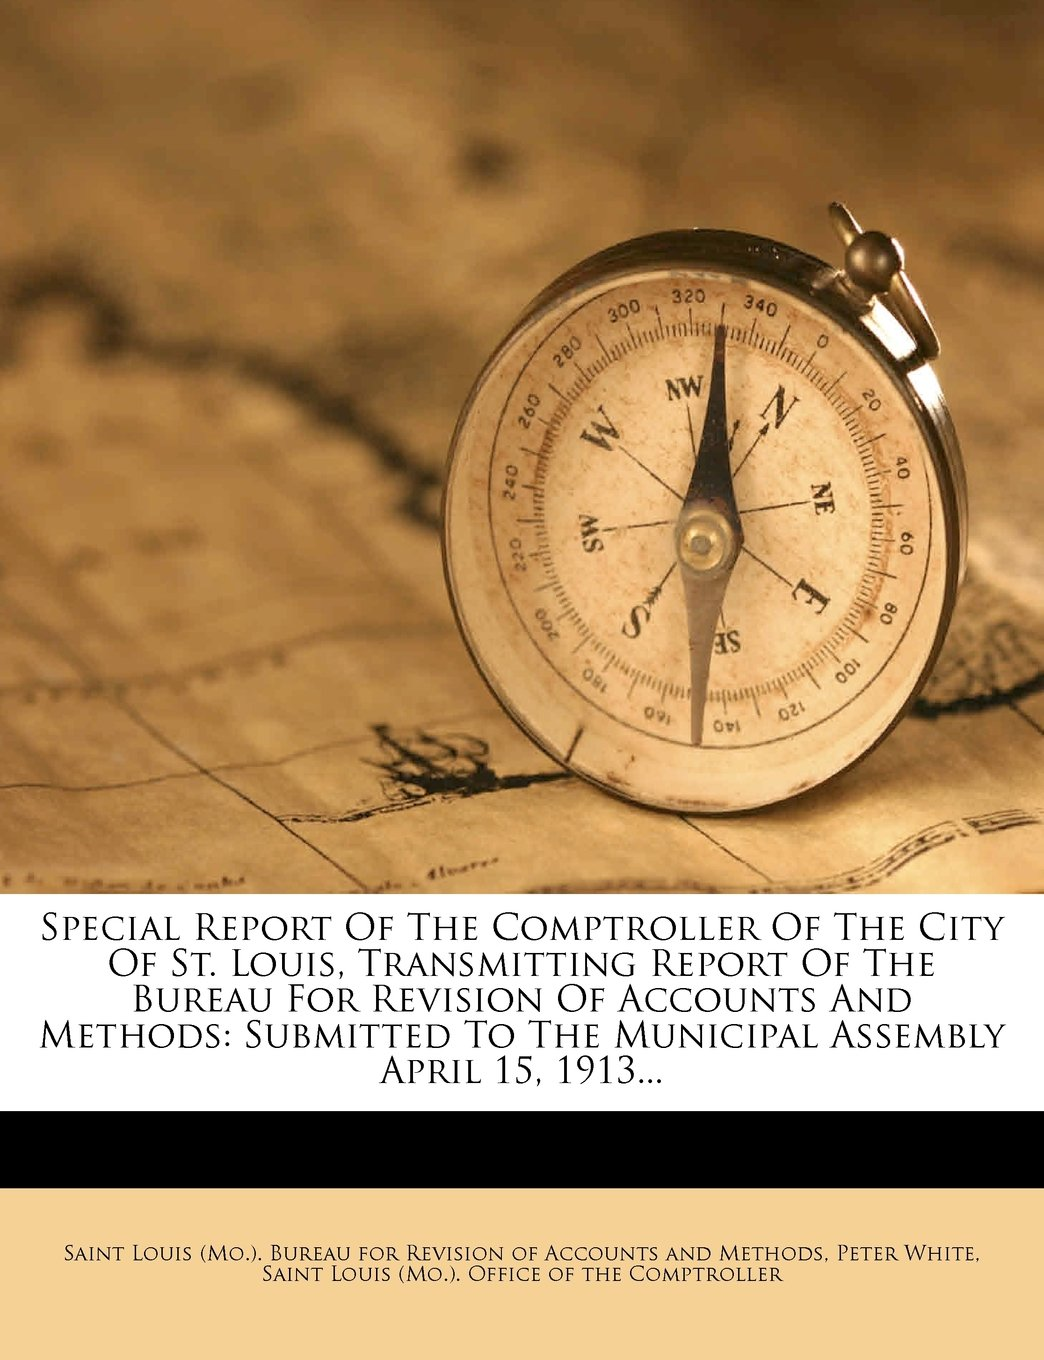 Special Report Of The Comptroller Of The City Of St. Louis, Transmitting Report Of The Bureau For Revision Of Accounts And Methods: Submitted To The Municipal Assembly April 15, 1913... ebook